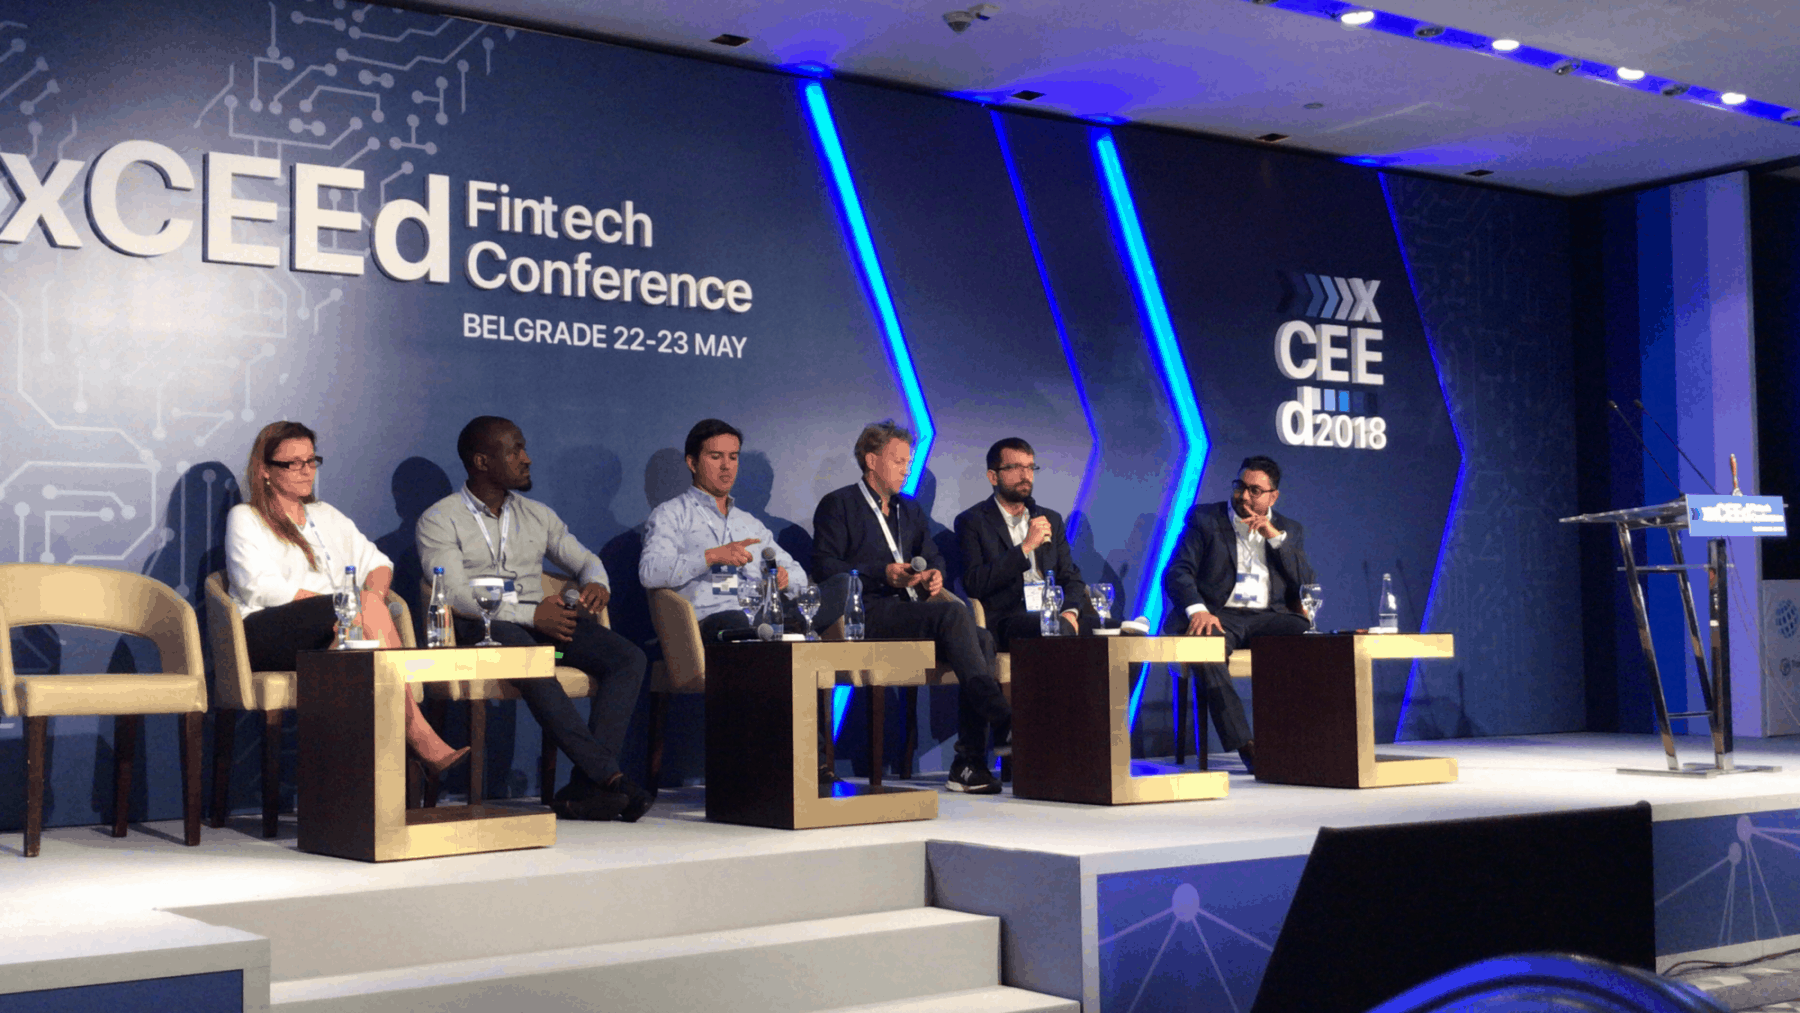 fintech conference about PSD2 regulation